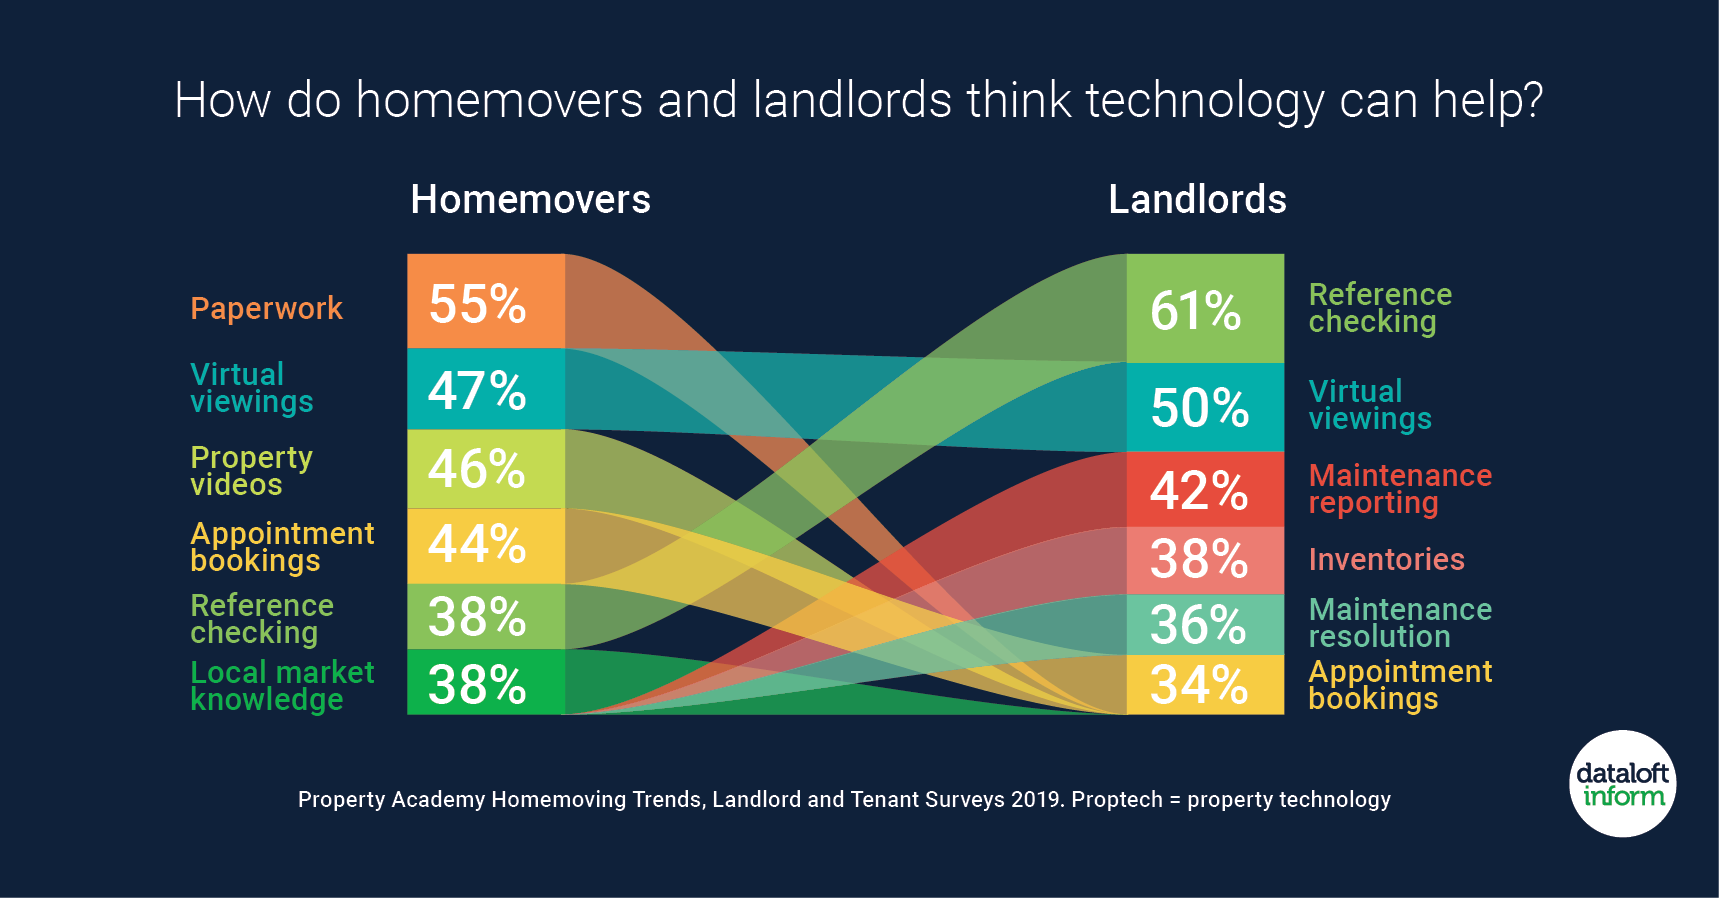 133 Dataloft inform Editors pick - DO HOMEOWNERS AND LANDLORDS THINK TECHNOLOGY CAN HELP?